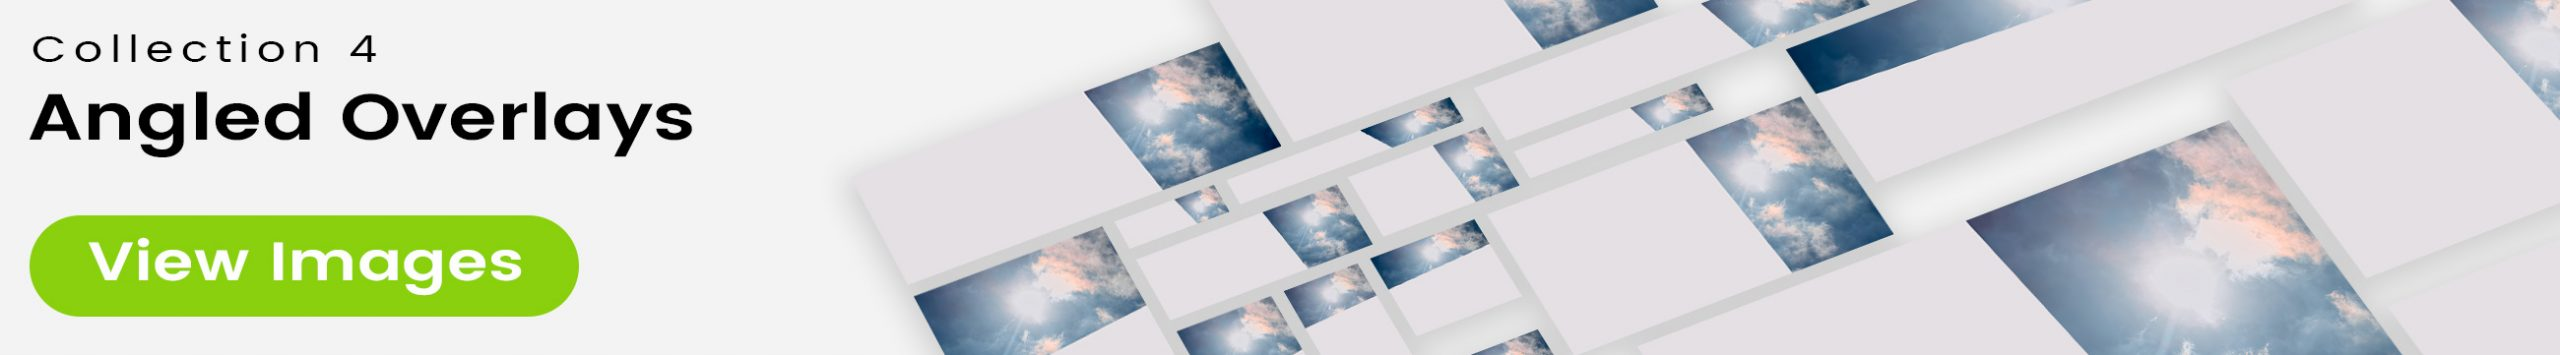 See 25 bonus images included with clouds stock image 9461. Collection 4 of 4 features an angled overlay design customized with a color that complements each photo.